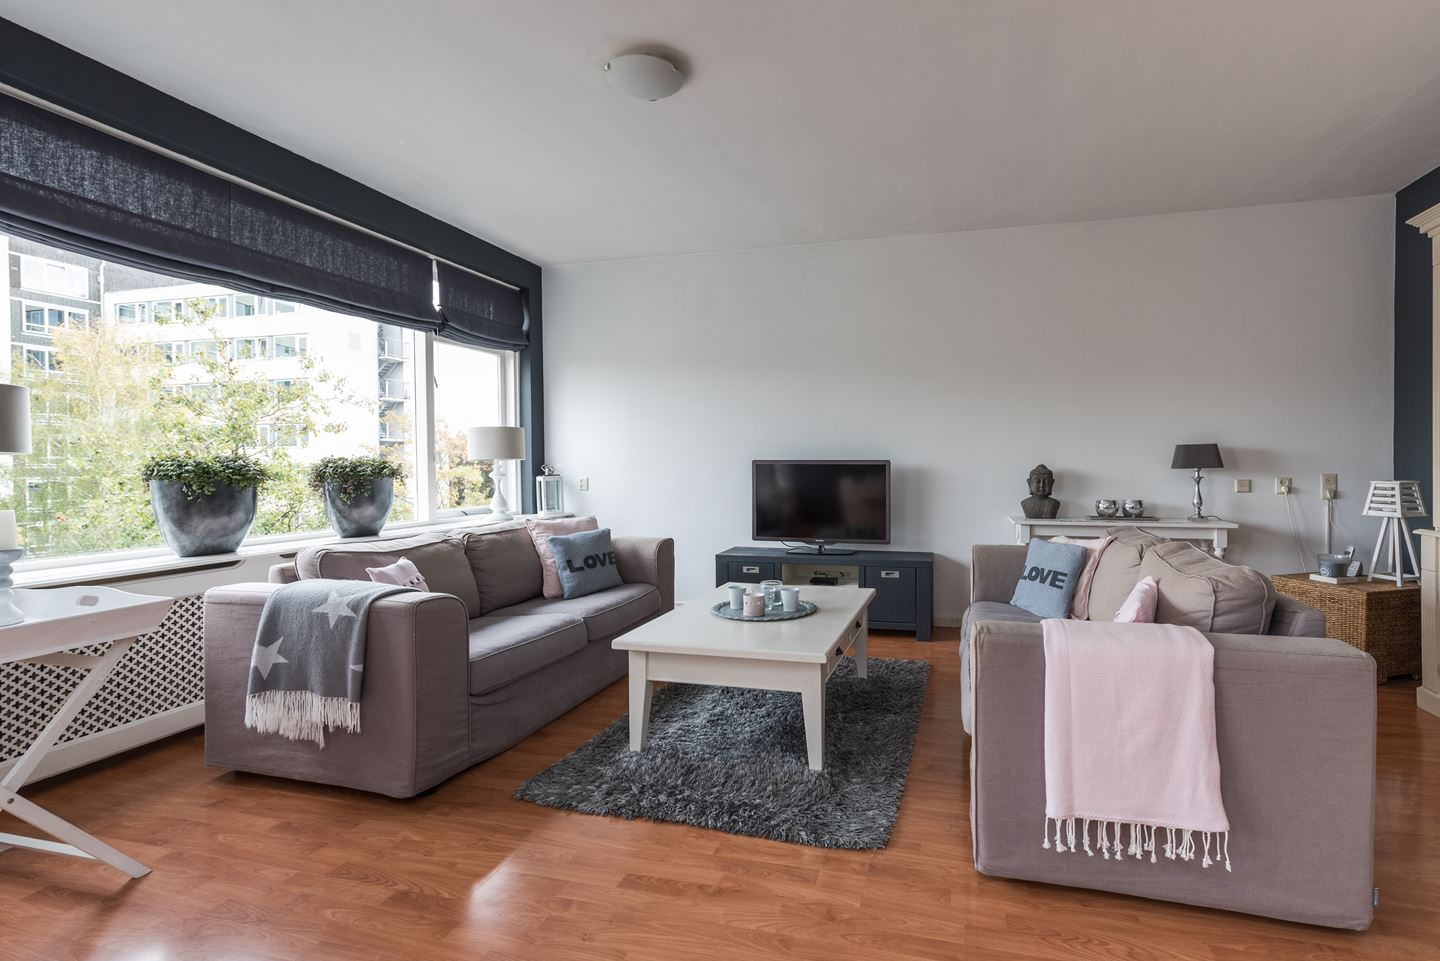 Fully Furnished Apartment With 2 Bedrooms Housing Rotterdam